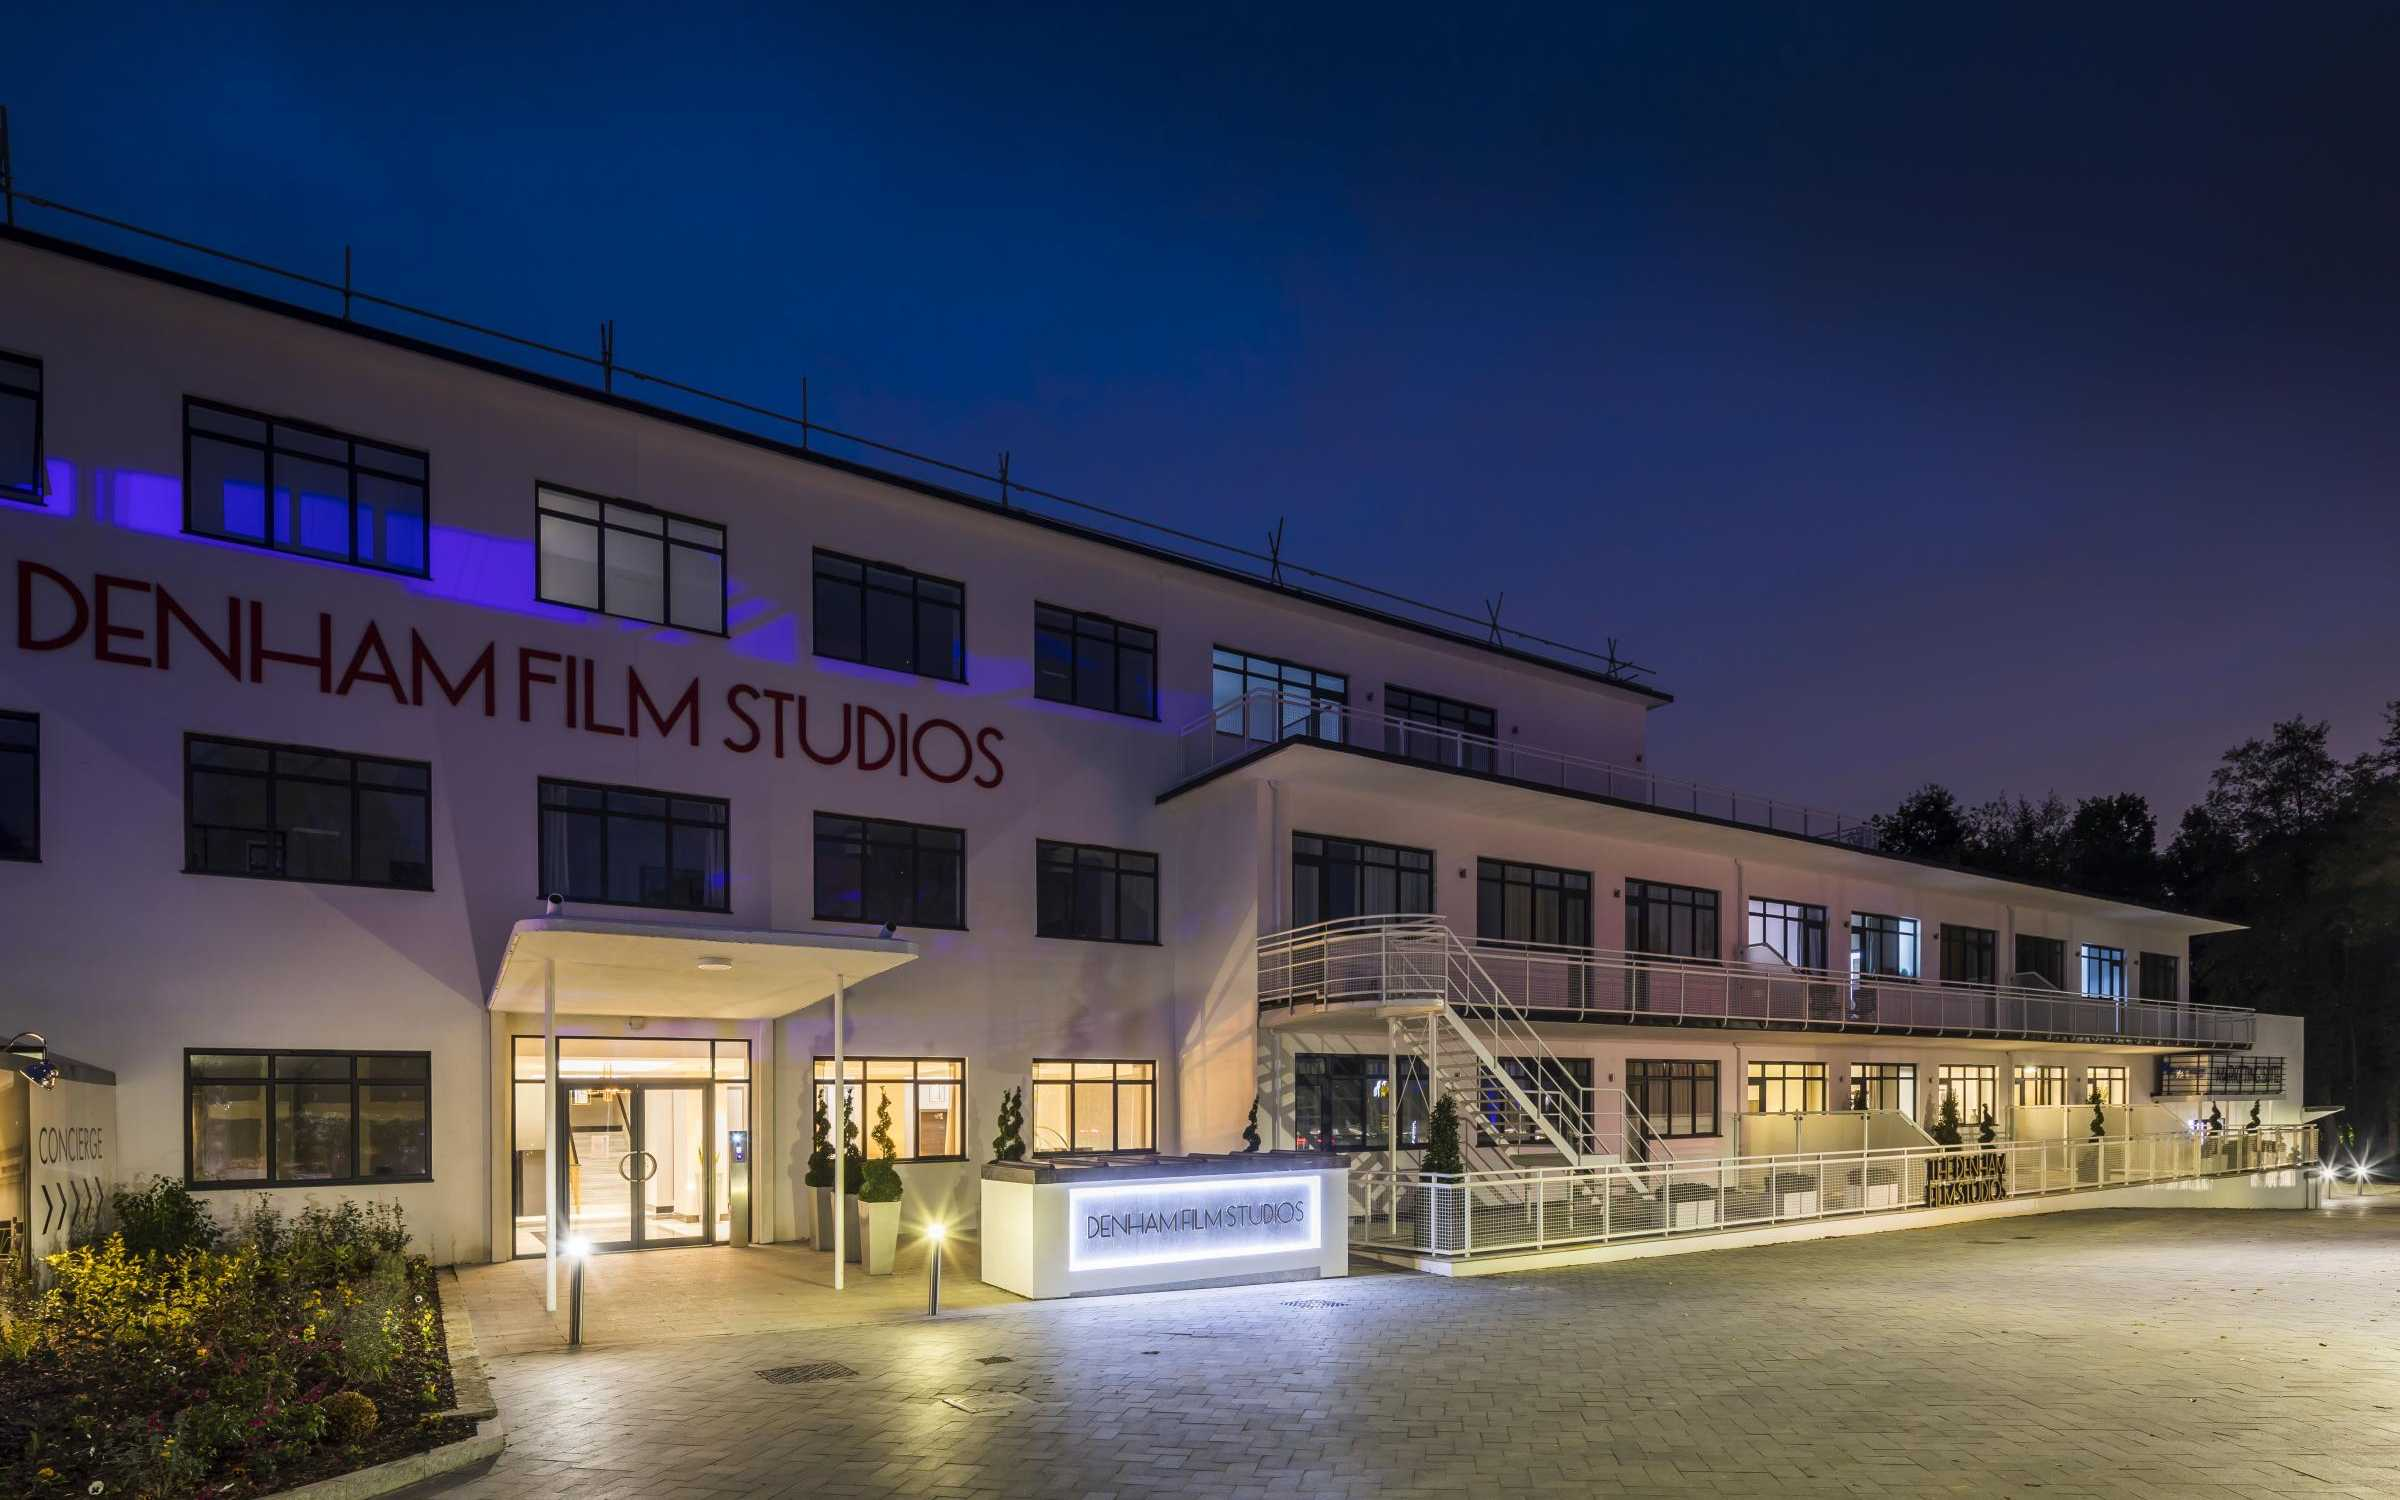 Lights, Camera, Action… Urmet supplies integrated video entry and Yokis lighting control at The Denham Film Studios